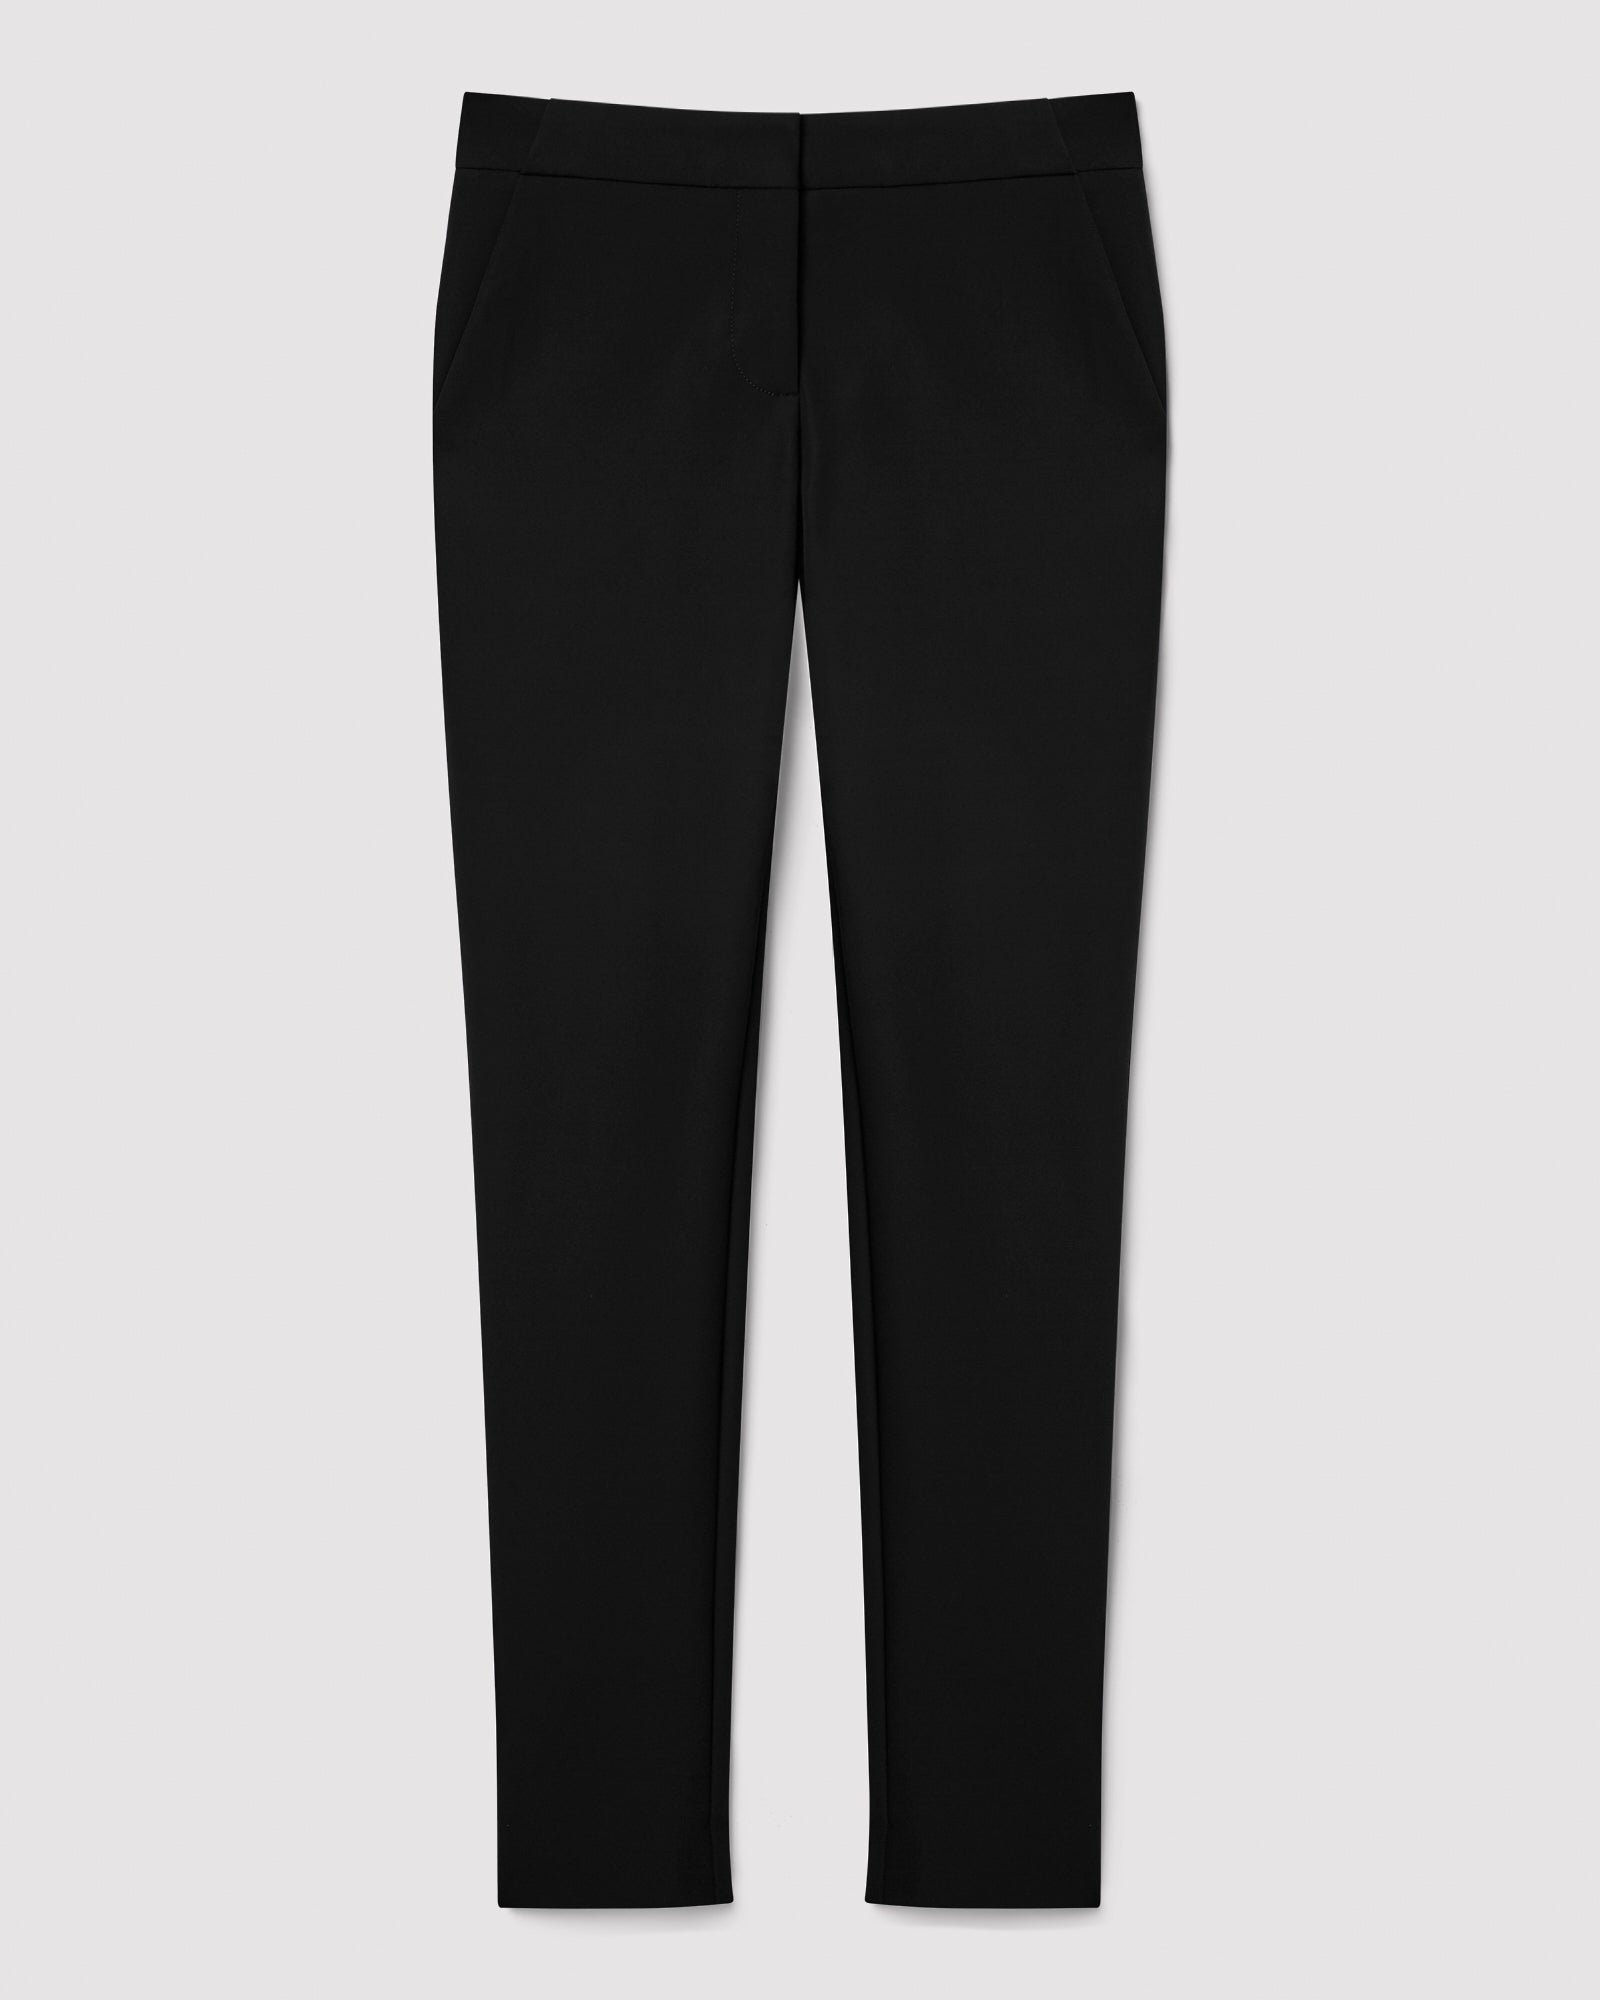 Power Move™ Pant Black 2.0